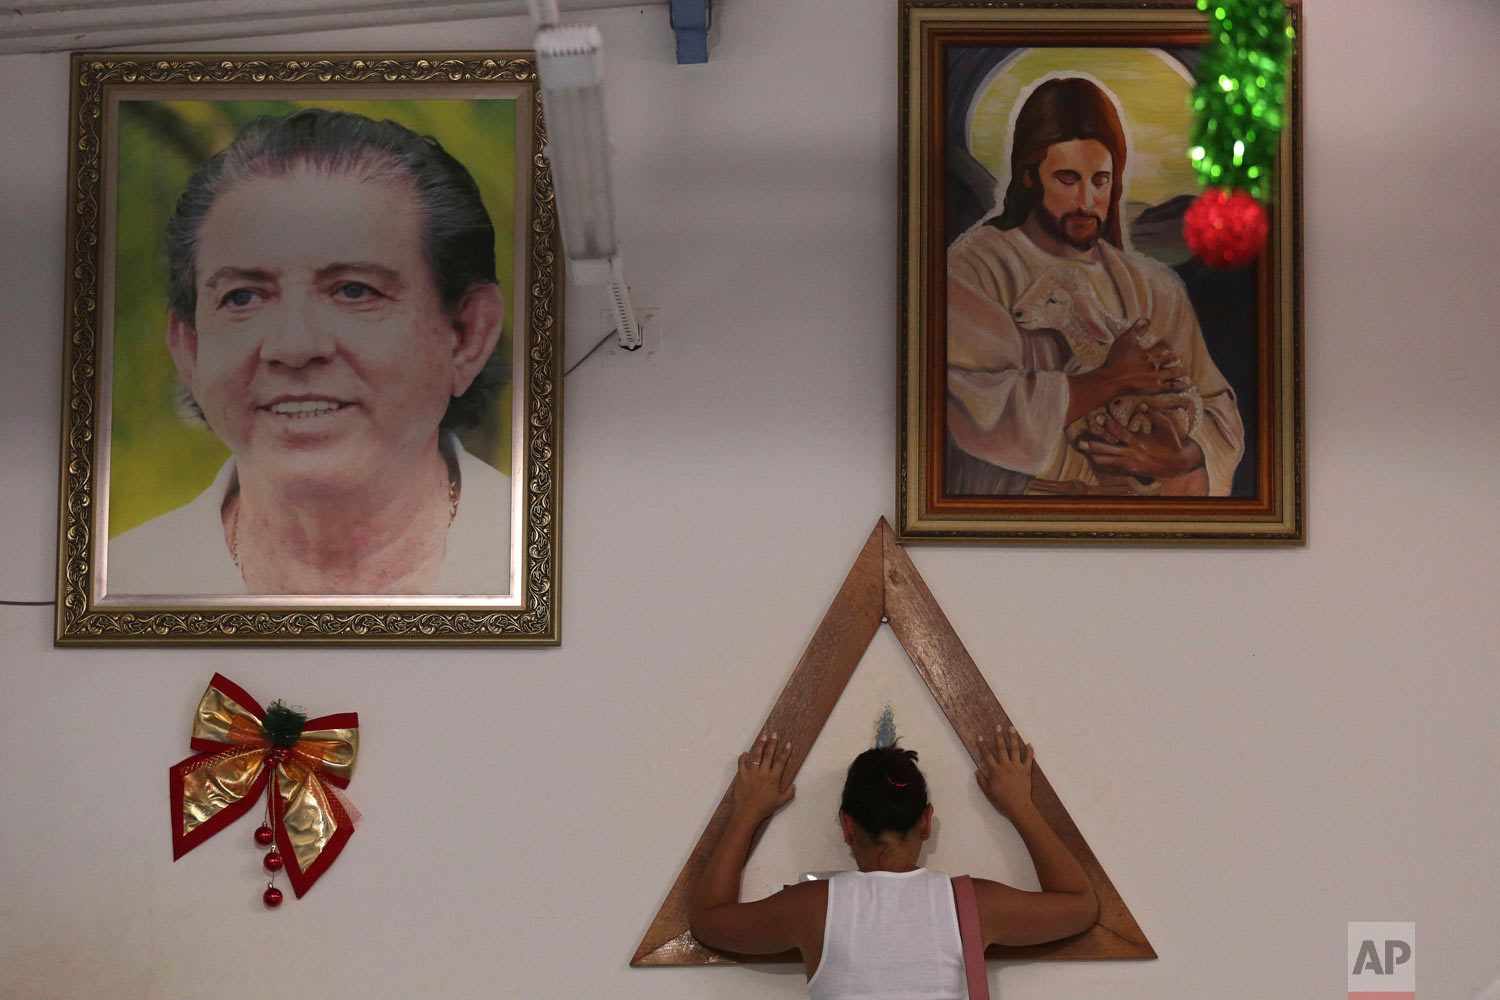 A woman places her hands in prayer on a wooden triangle, between framed images of spiritual healer Joao Teixeira de Faria and Jesus Christ, inside the Casa de Dom Inacio, in Abadiania, Brazil, Jan. 4, 2019. Hundreds of women have accused de Faria of sexual abuse. (AP Photo/Eraldo Peres)